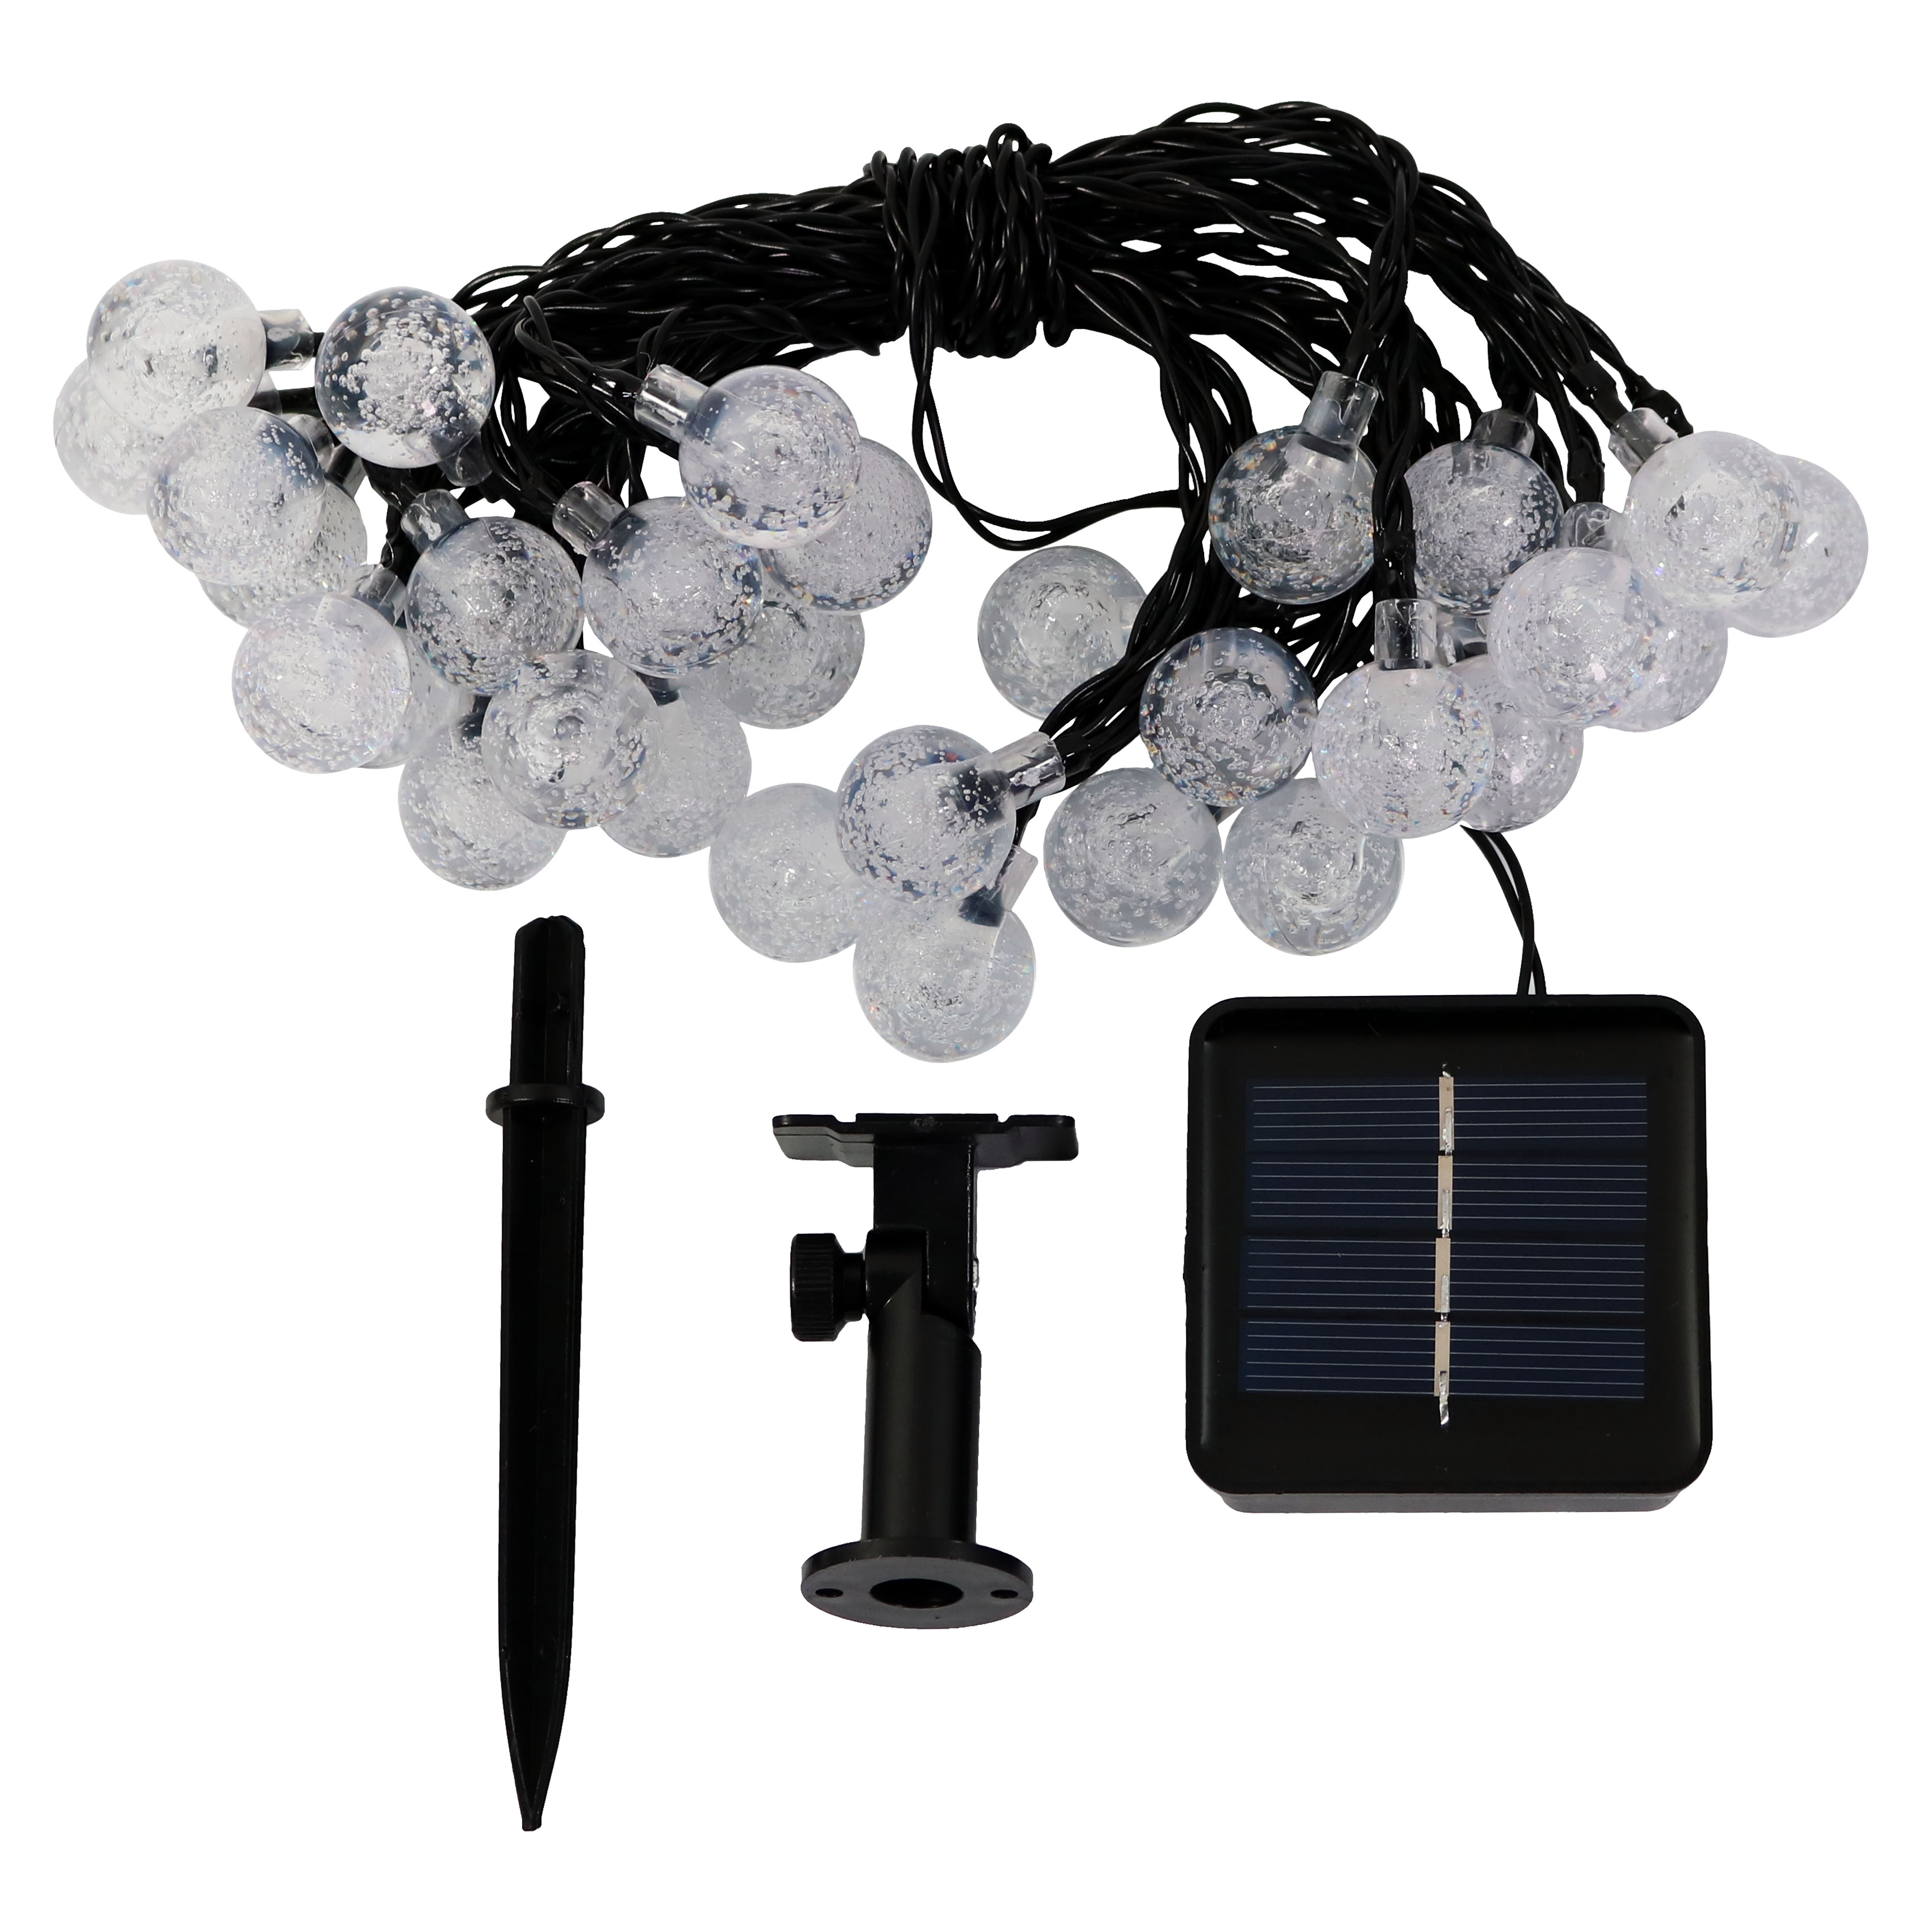 Solar Powered String Lights For Patio : Solar Powered Garden Outdoor Patio String Lights-Multiple Options Available eBay